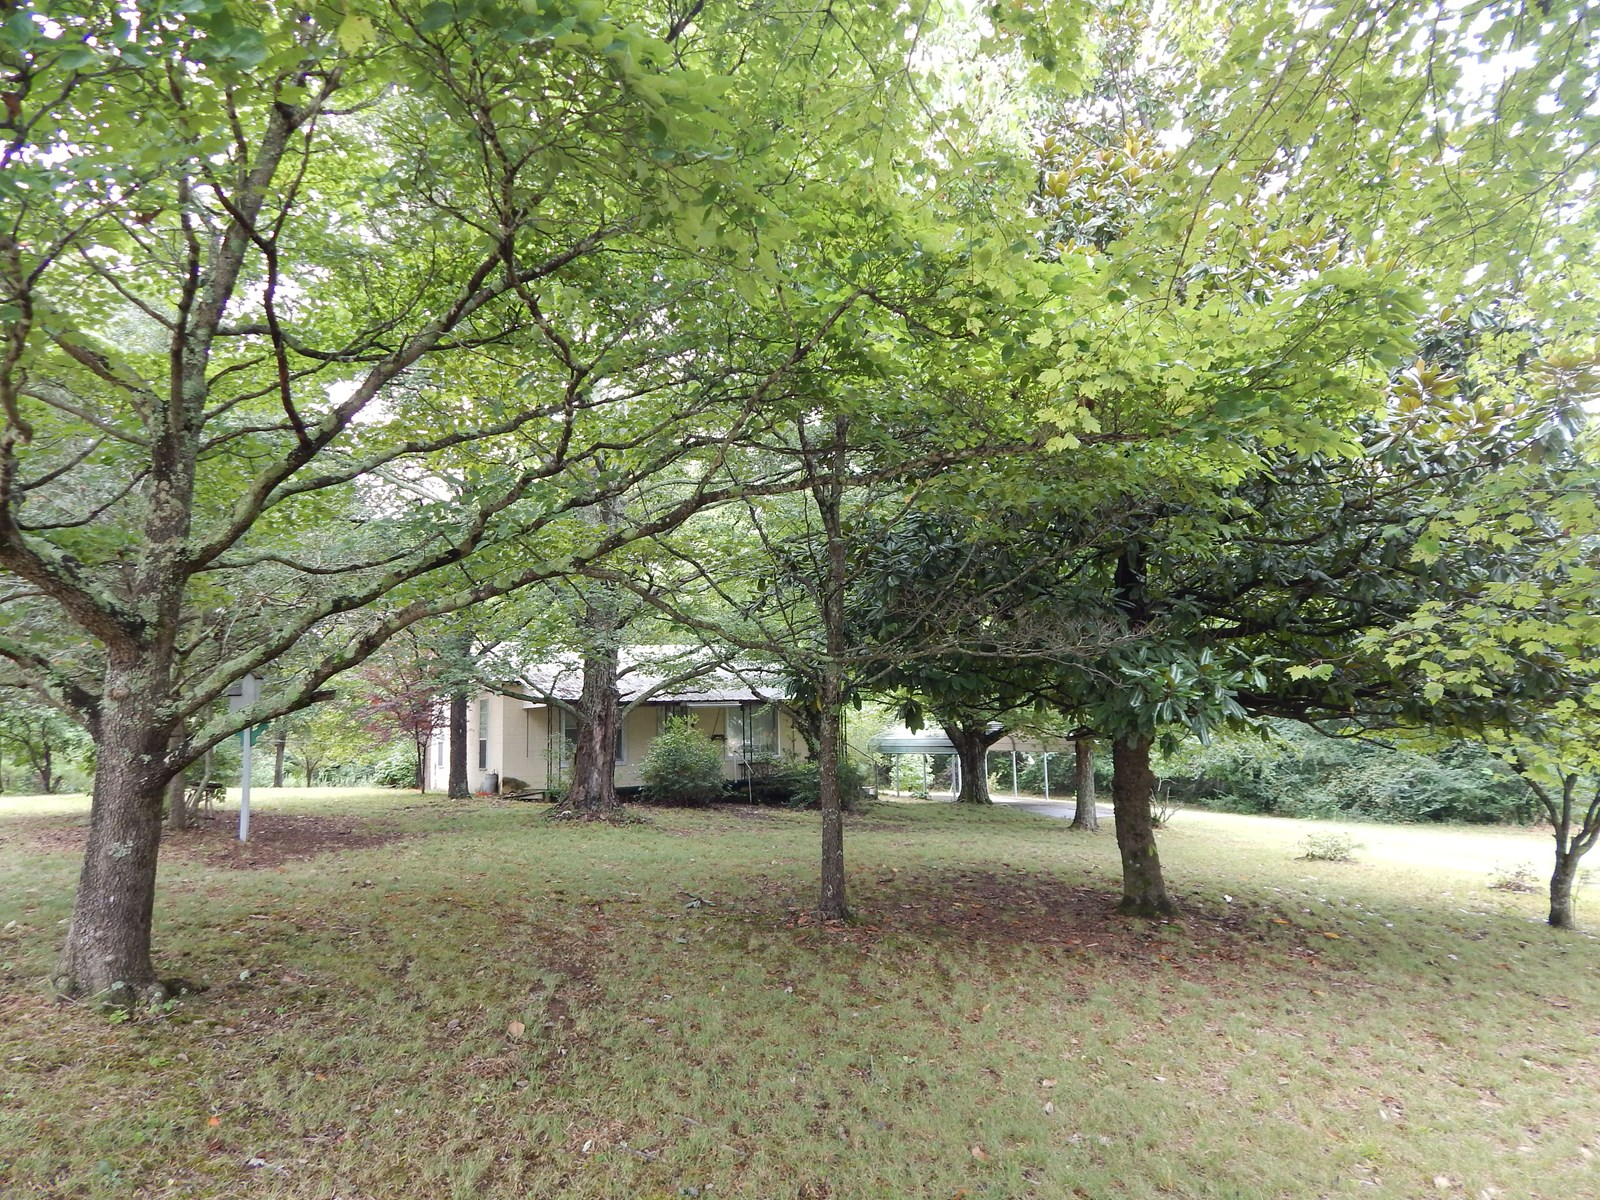 Tn. Country Home, 2 Acres, 2 Bed 1 Bath, Storm Shelter, Shad